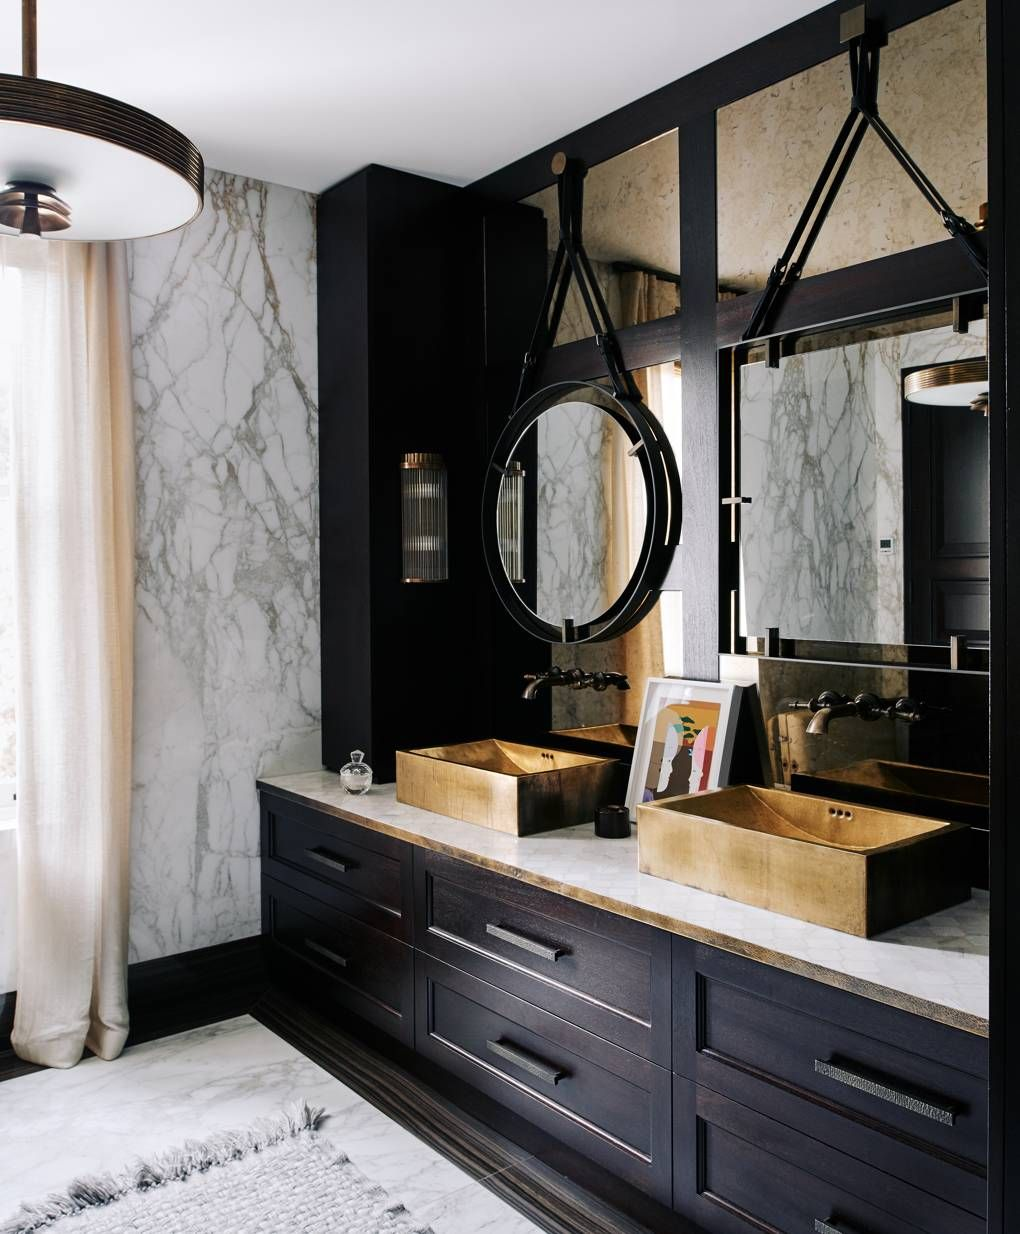 1558953967 761 black and white bathroom designs that show simple can also be interesting - Black and White Bathroom Designs That Show Simple Can Also Be Interesting